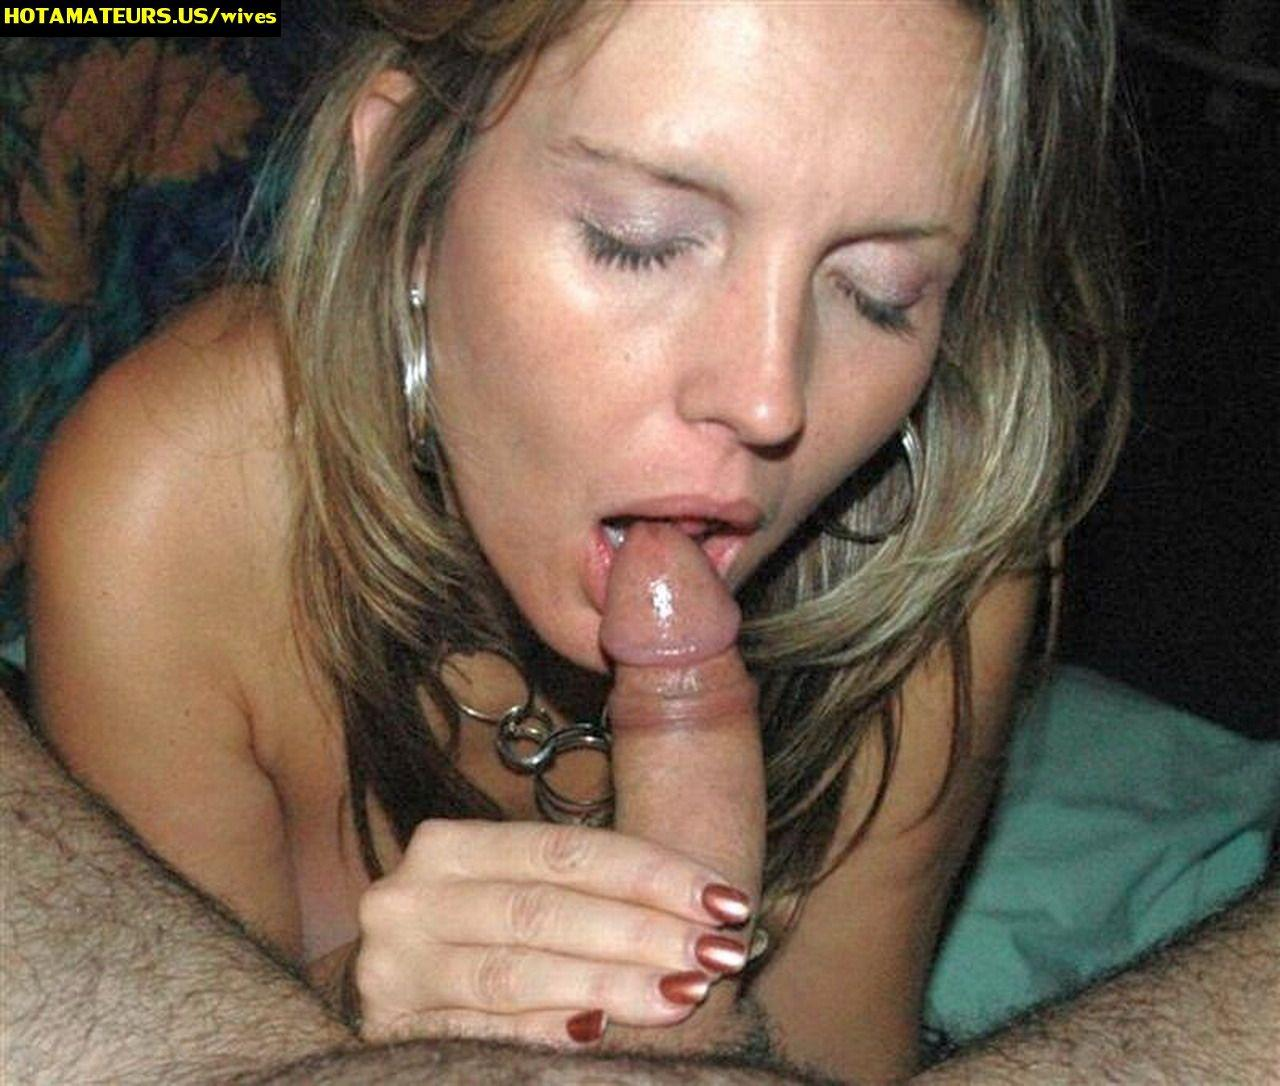 CumOnWives presents: Amateur housewive blowjobs